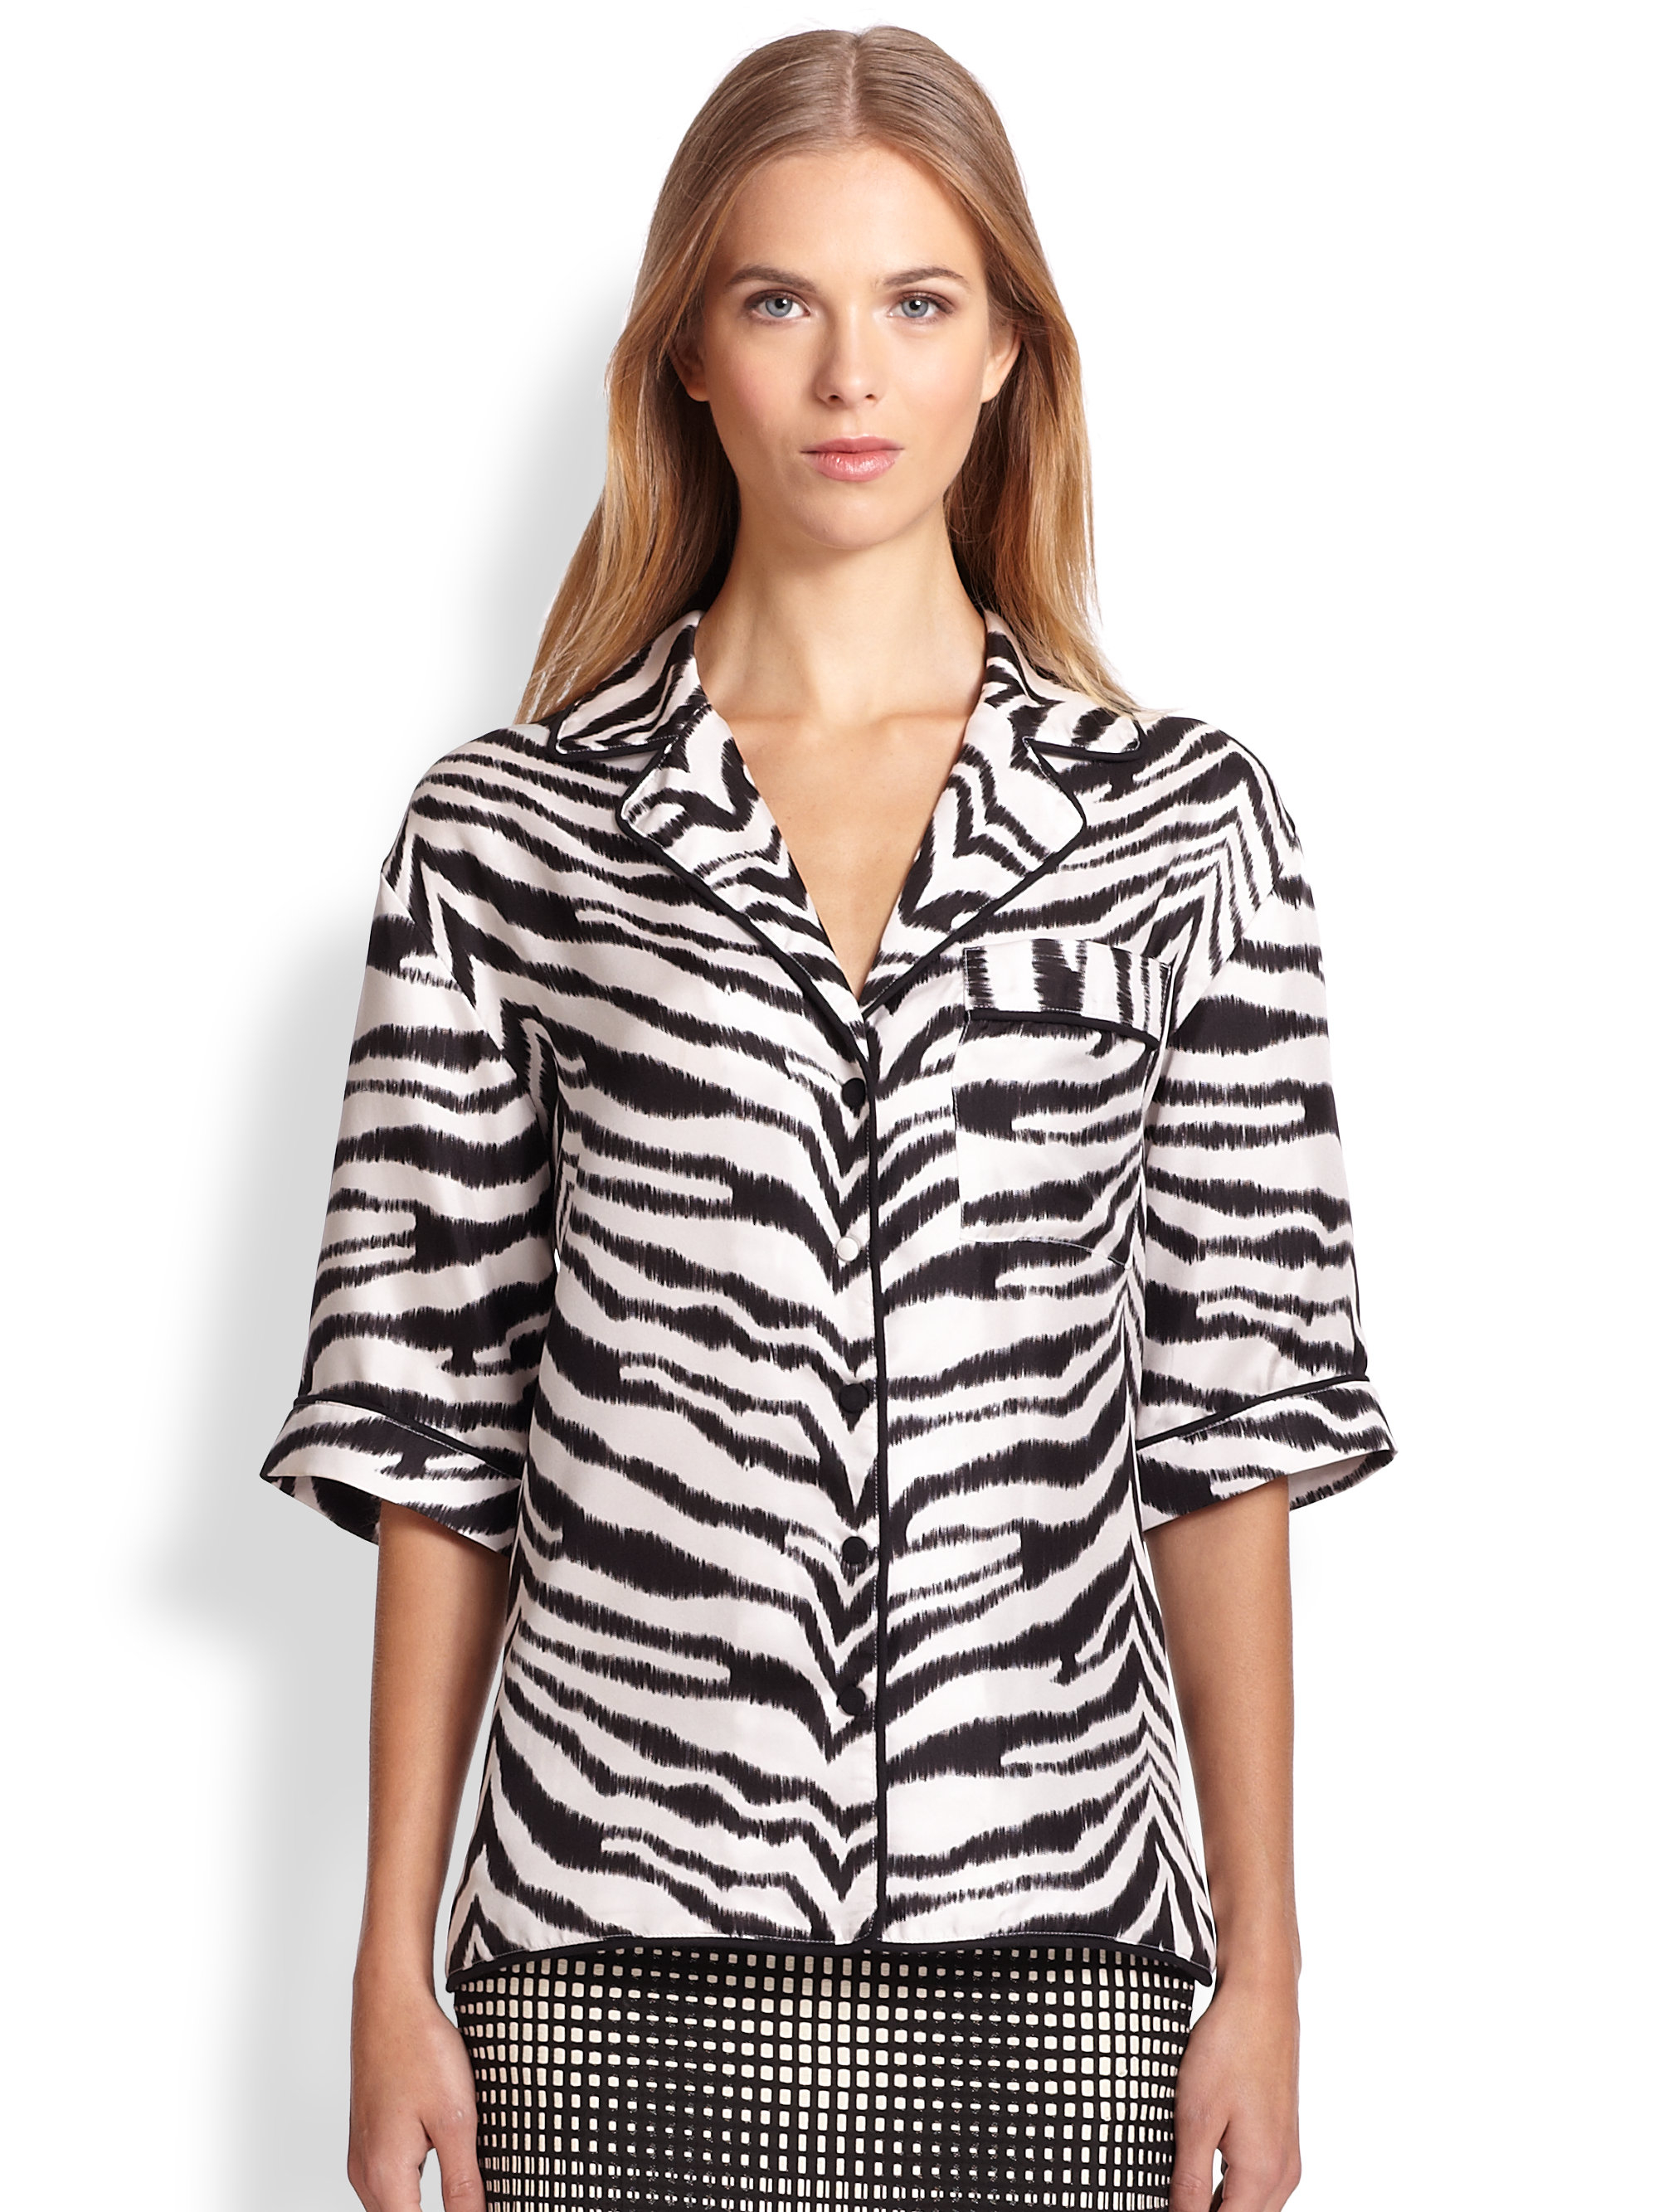 Animal Print Shirts. invalid category id. Animal Print Shirts. Product - Anna-Kaci S/M Fit Black Happy Prancing Dancing Bright Shiny Zebra Print T-Shirt. Reduced Price. Product Image. Items sold by shopnow-ahoqsxpv.ga that are marked eligible on the product and checkout page with the logo ;.